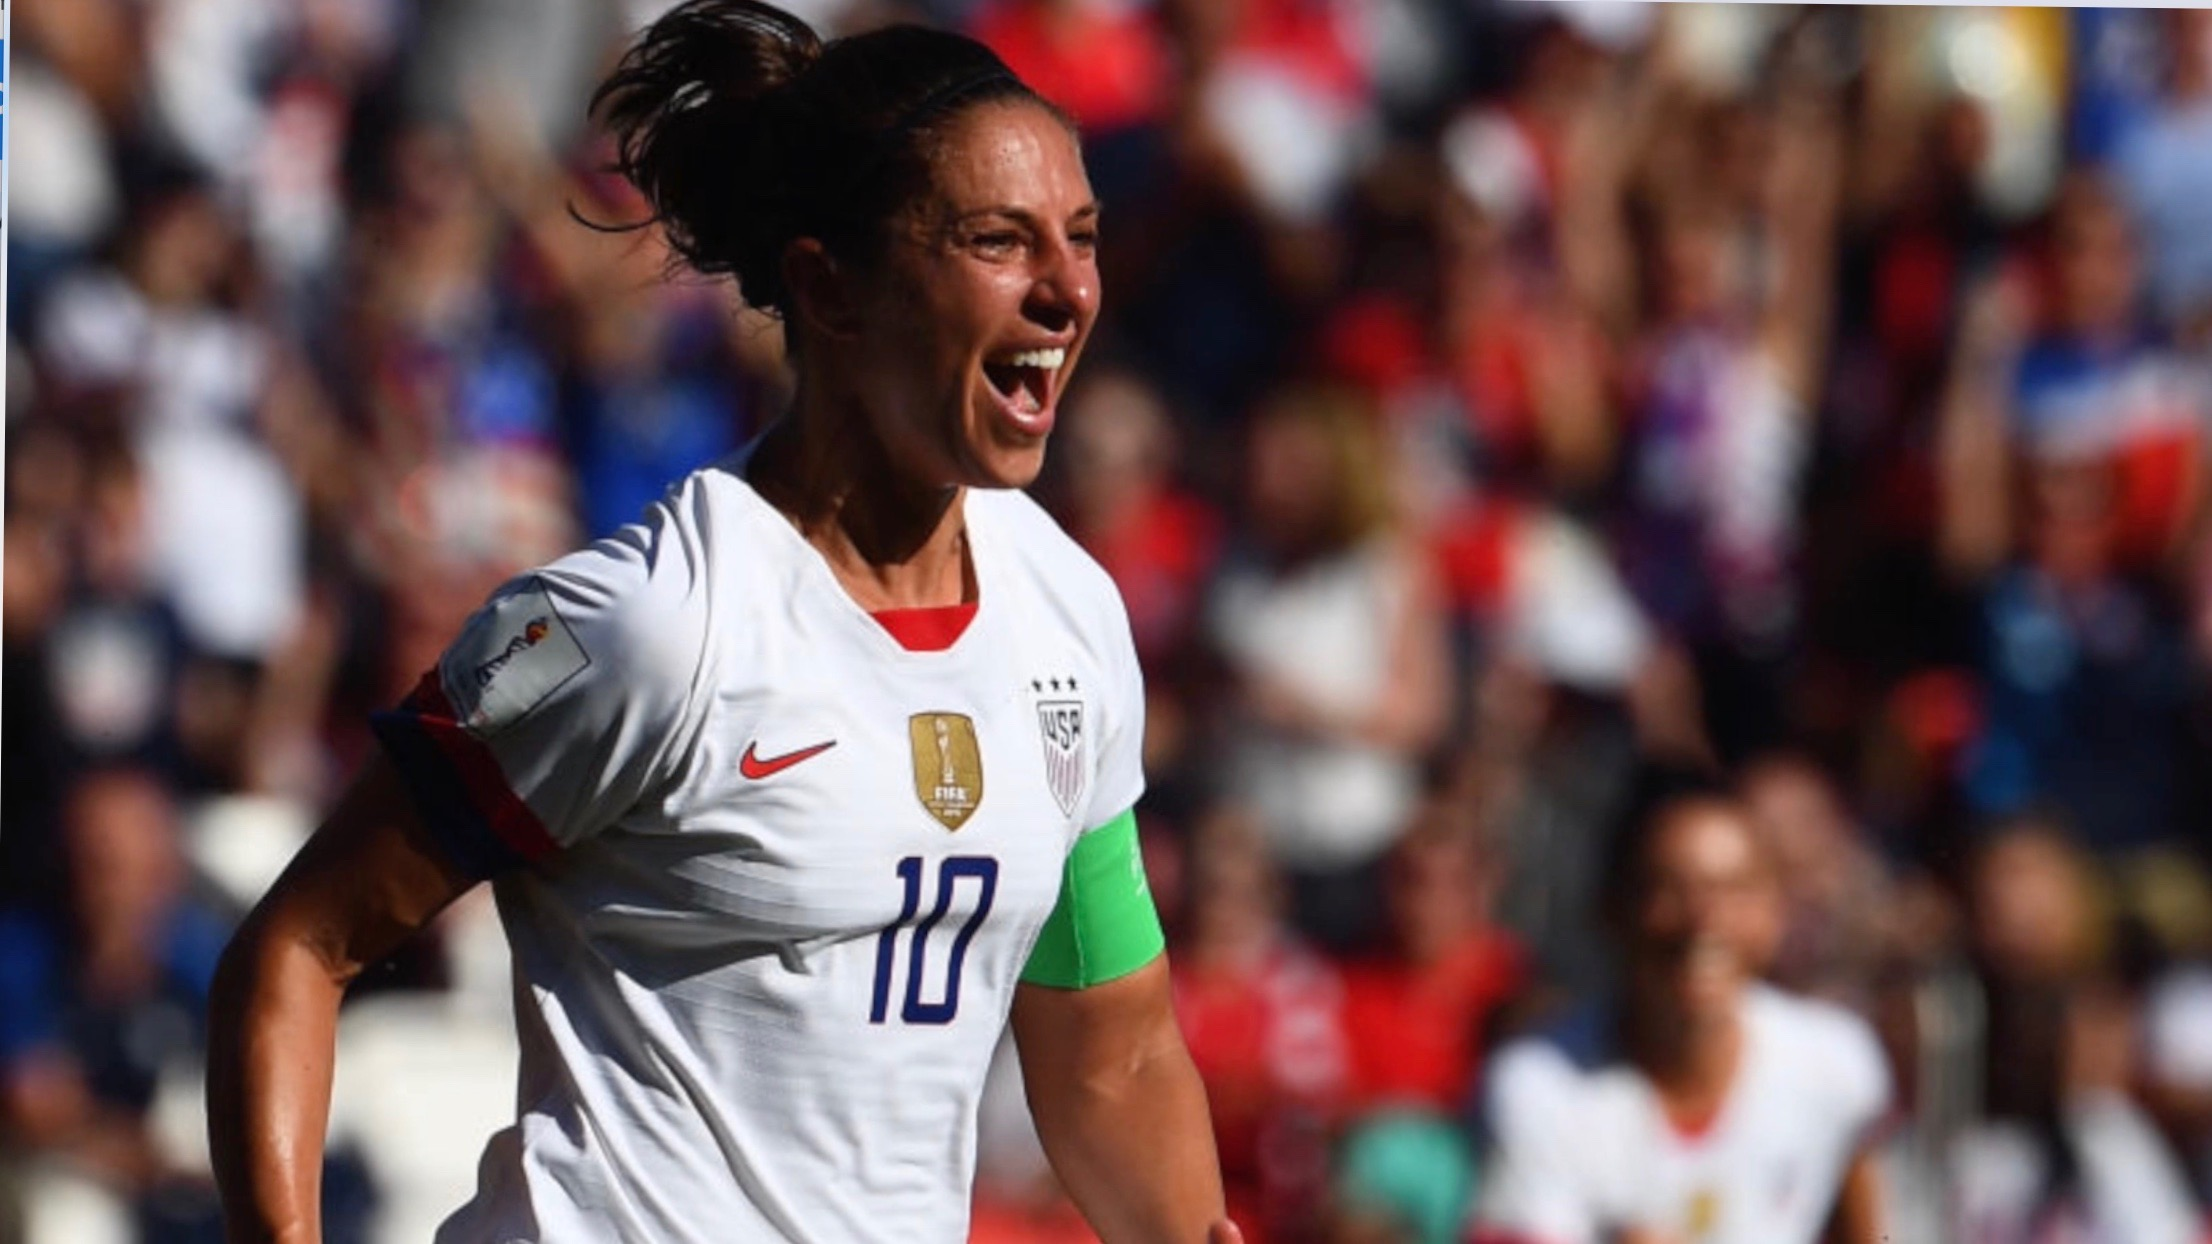 Carli Lloyd's Polite 'Golf Clap' Burns Celebration Critics At Women's World Cup